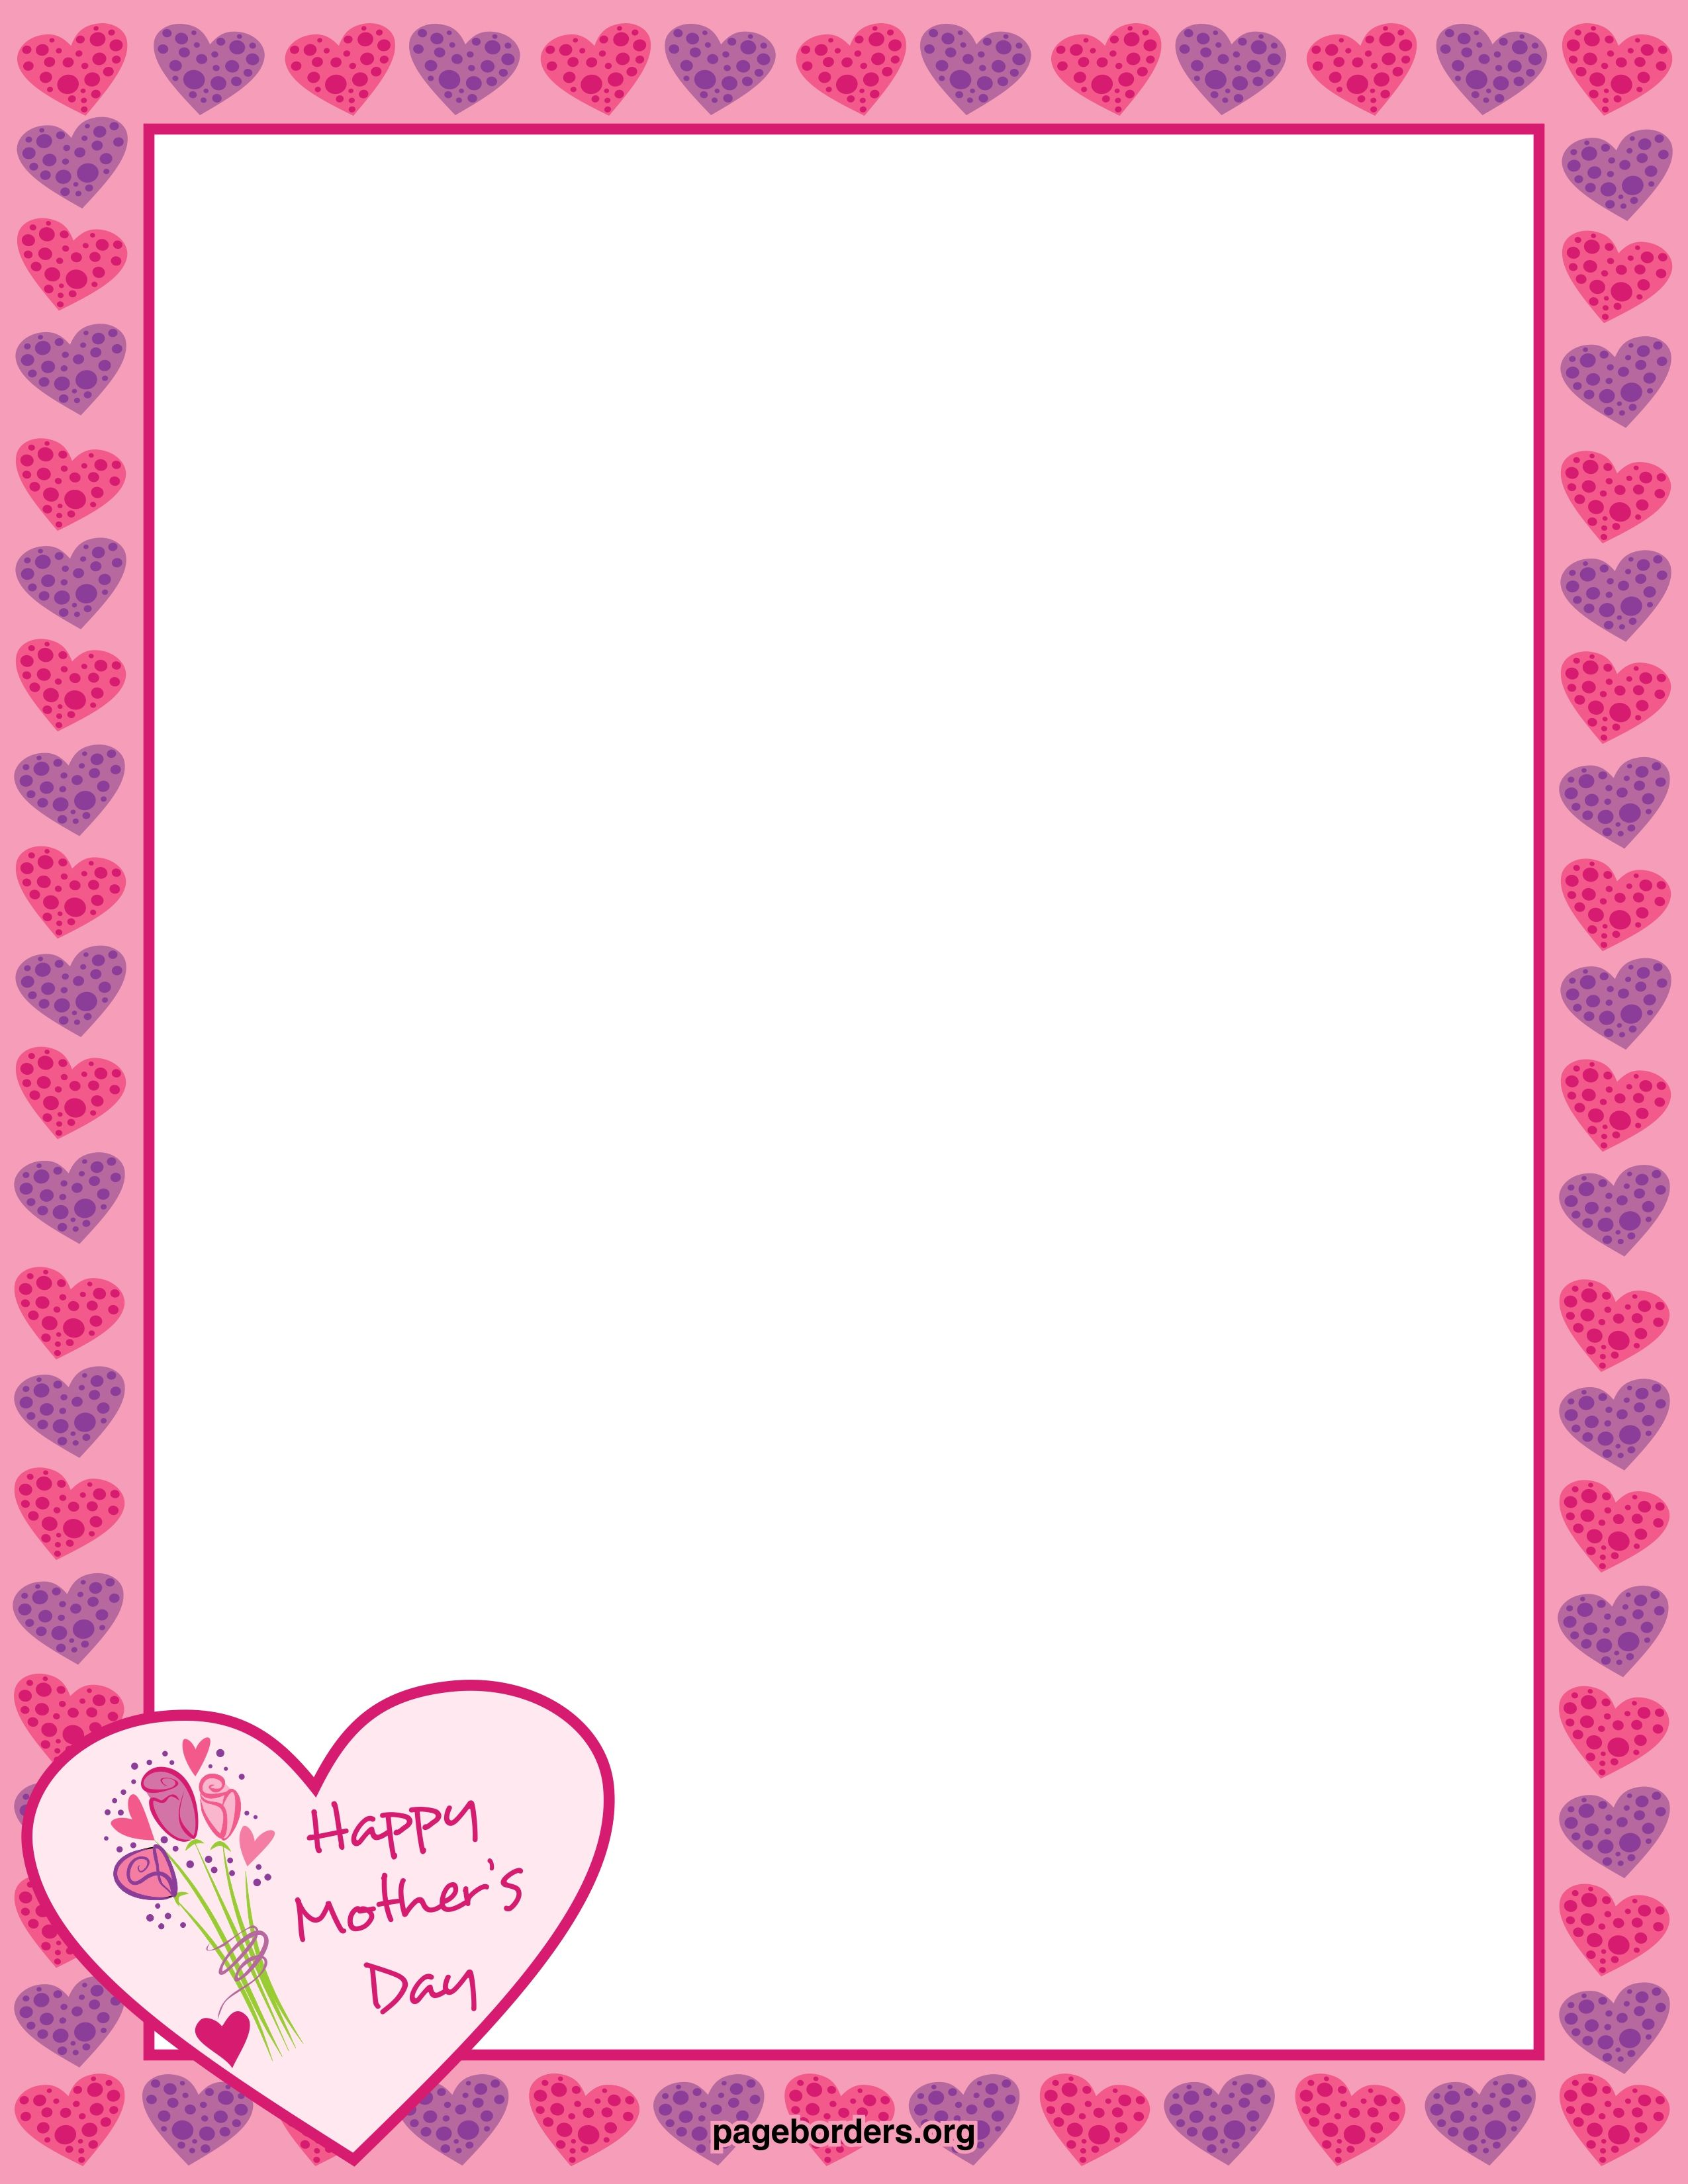 Mothers Day Border Png & Free Mothers Day Border.png.